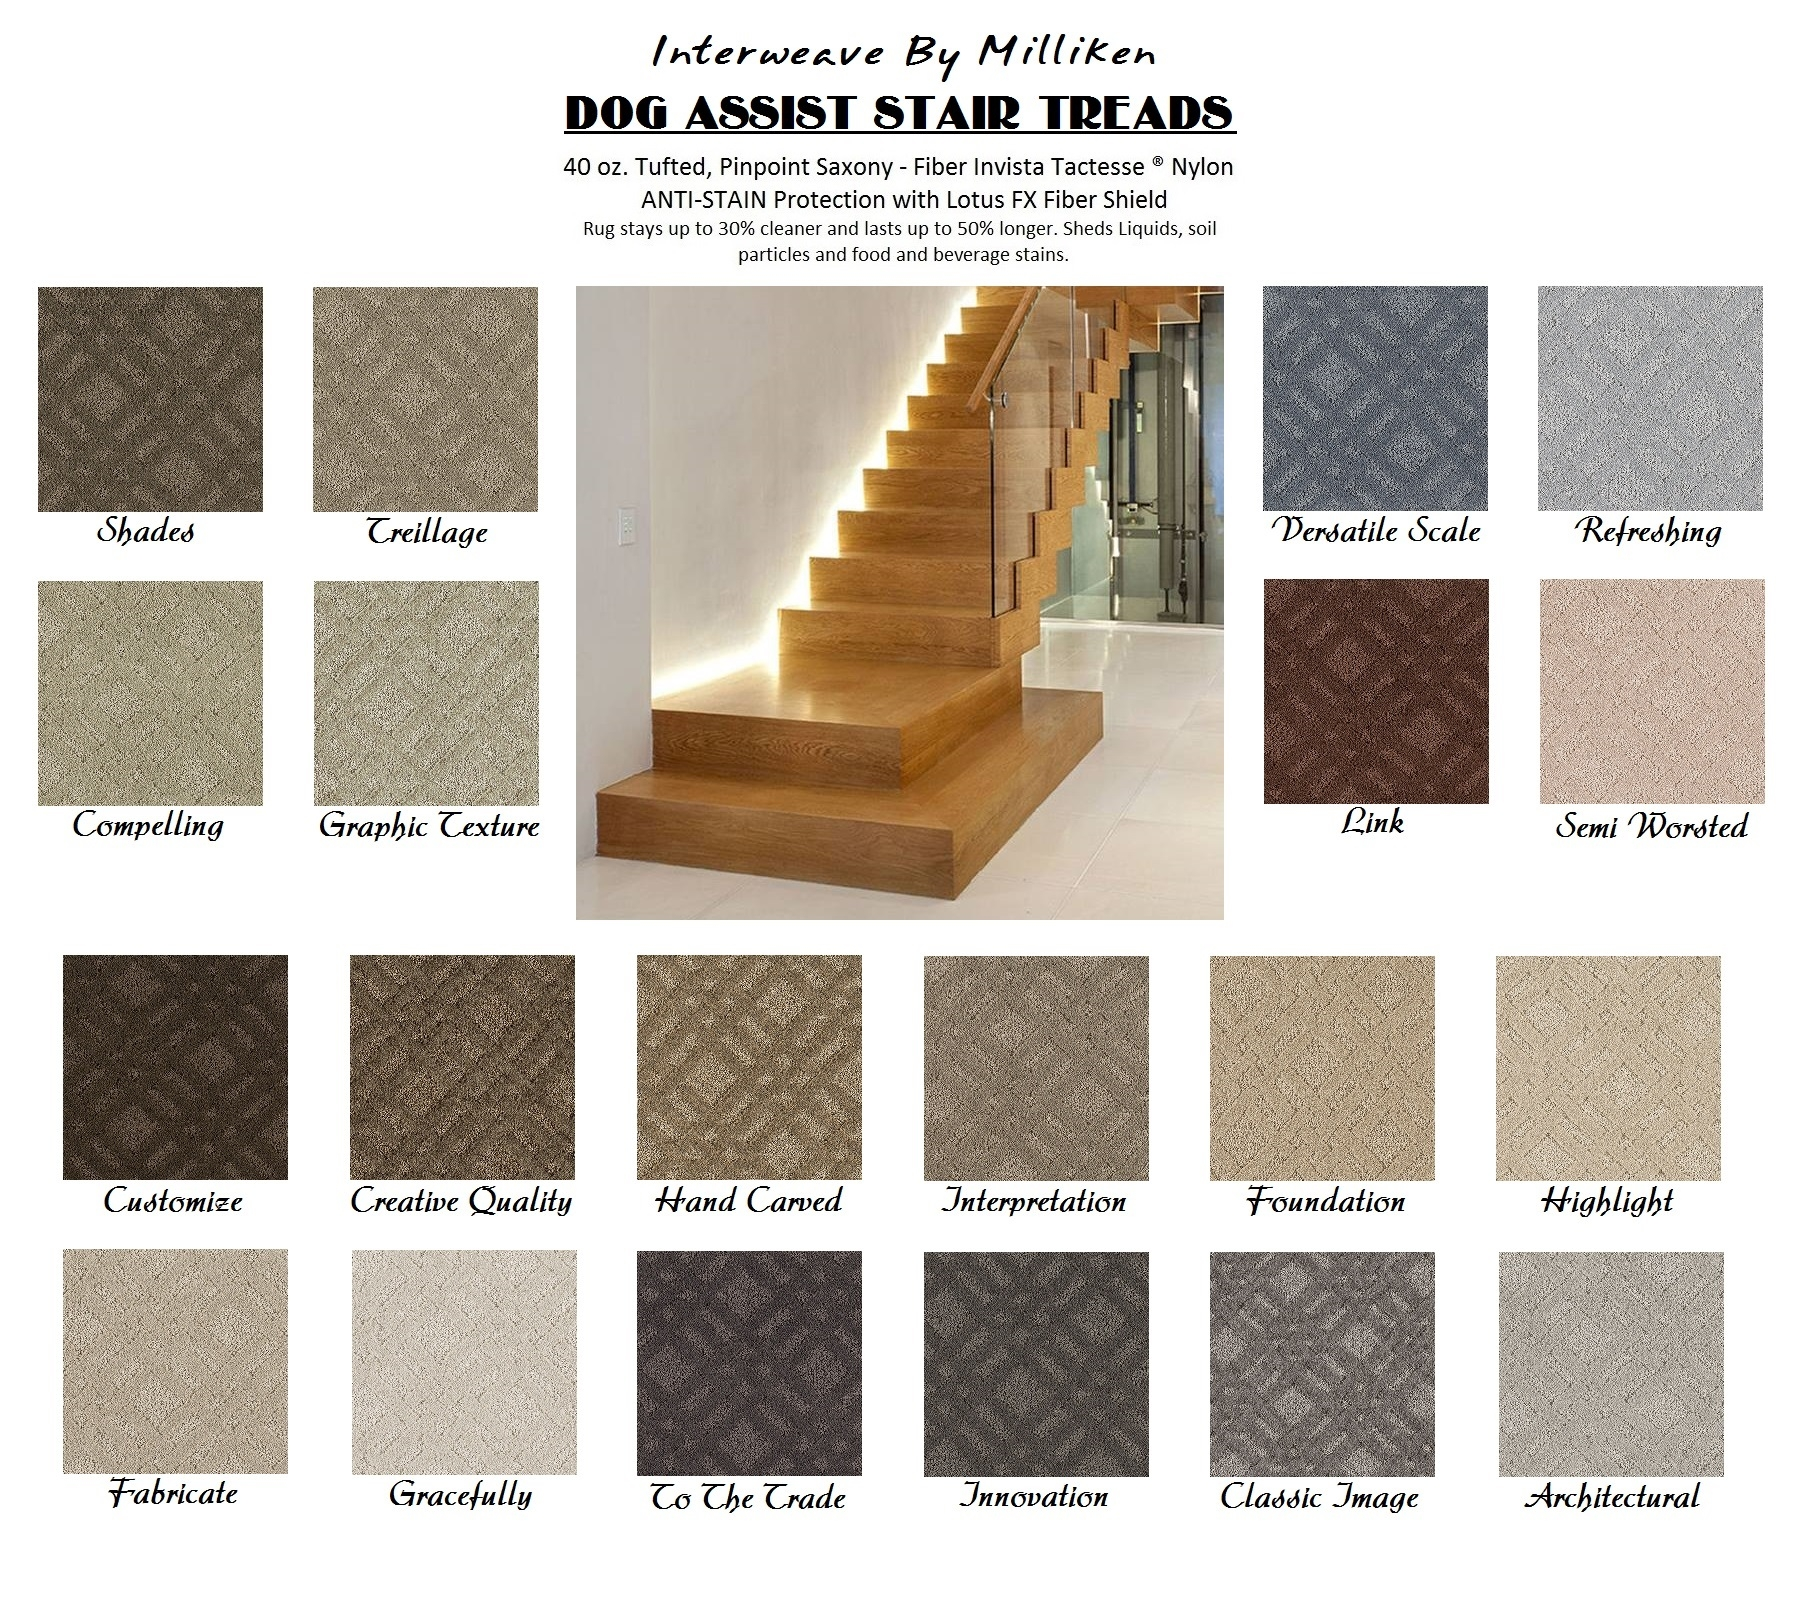 Classic Image Interweave Ii Dog Assist Carpet Stair Treads Regarding Stair Tread Rugs For Dogs (Image 4 of 15)